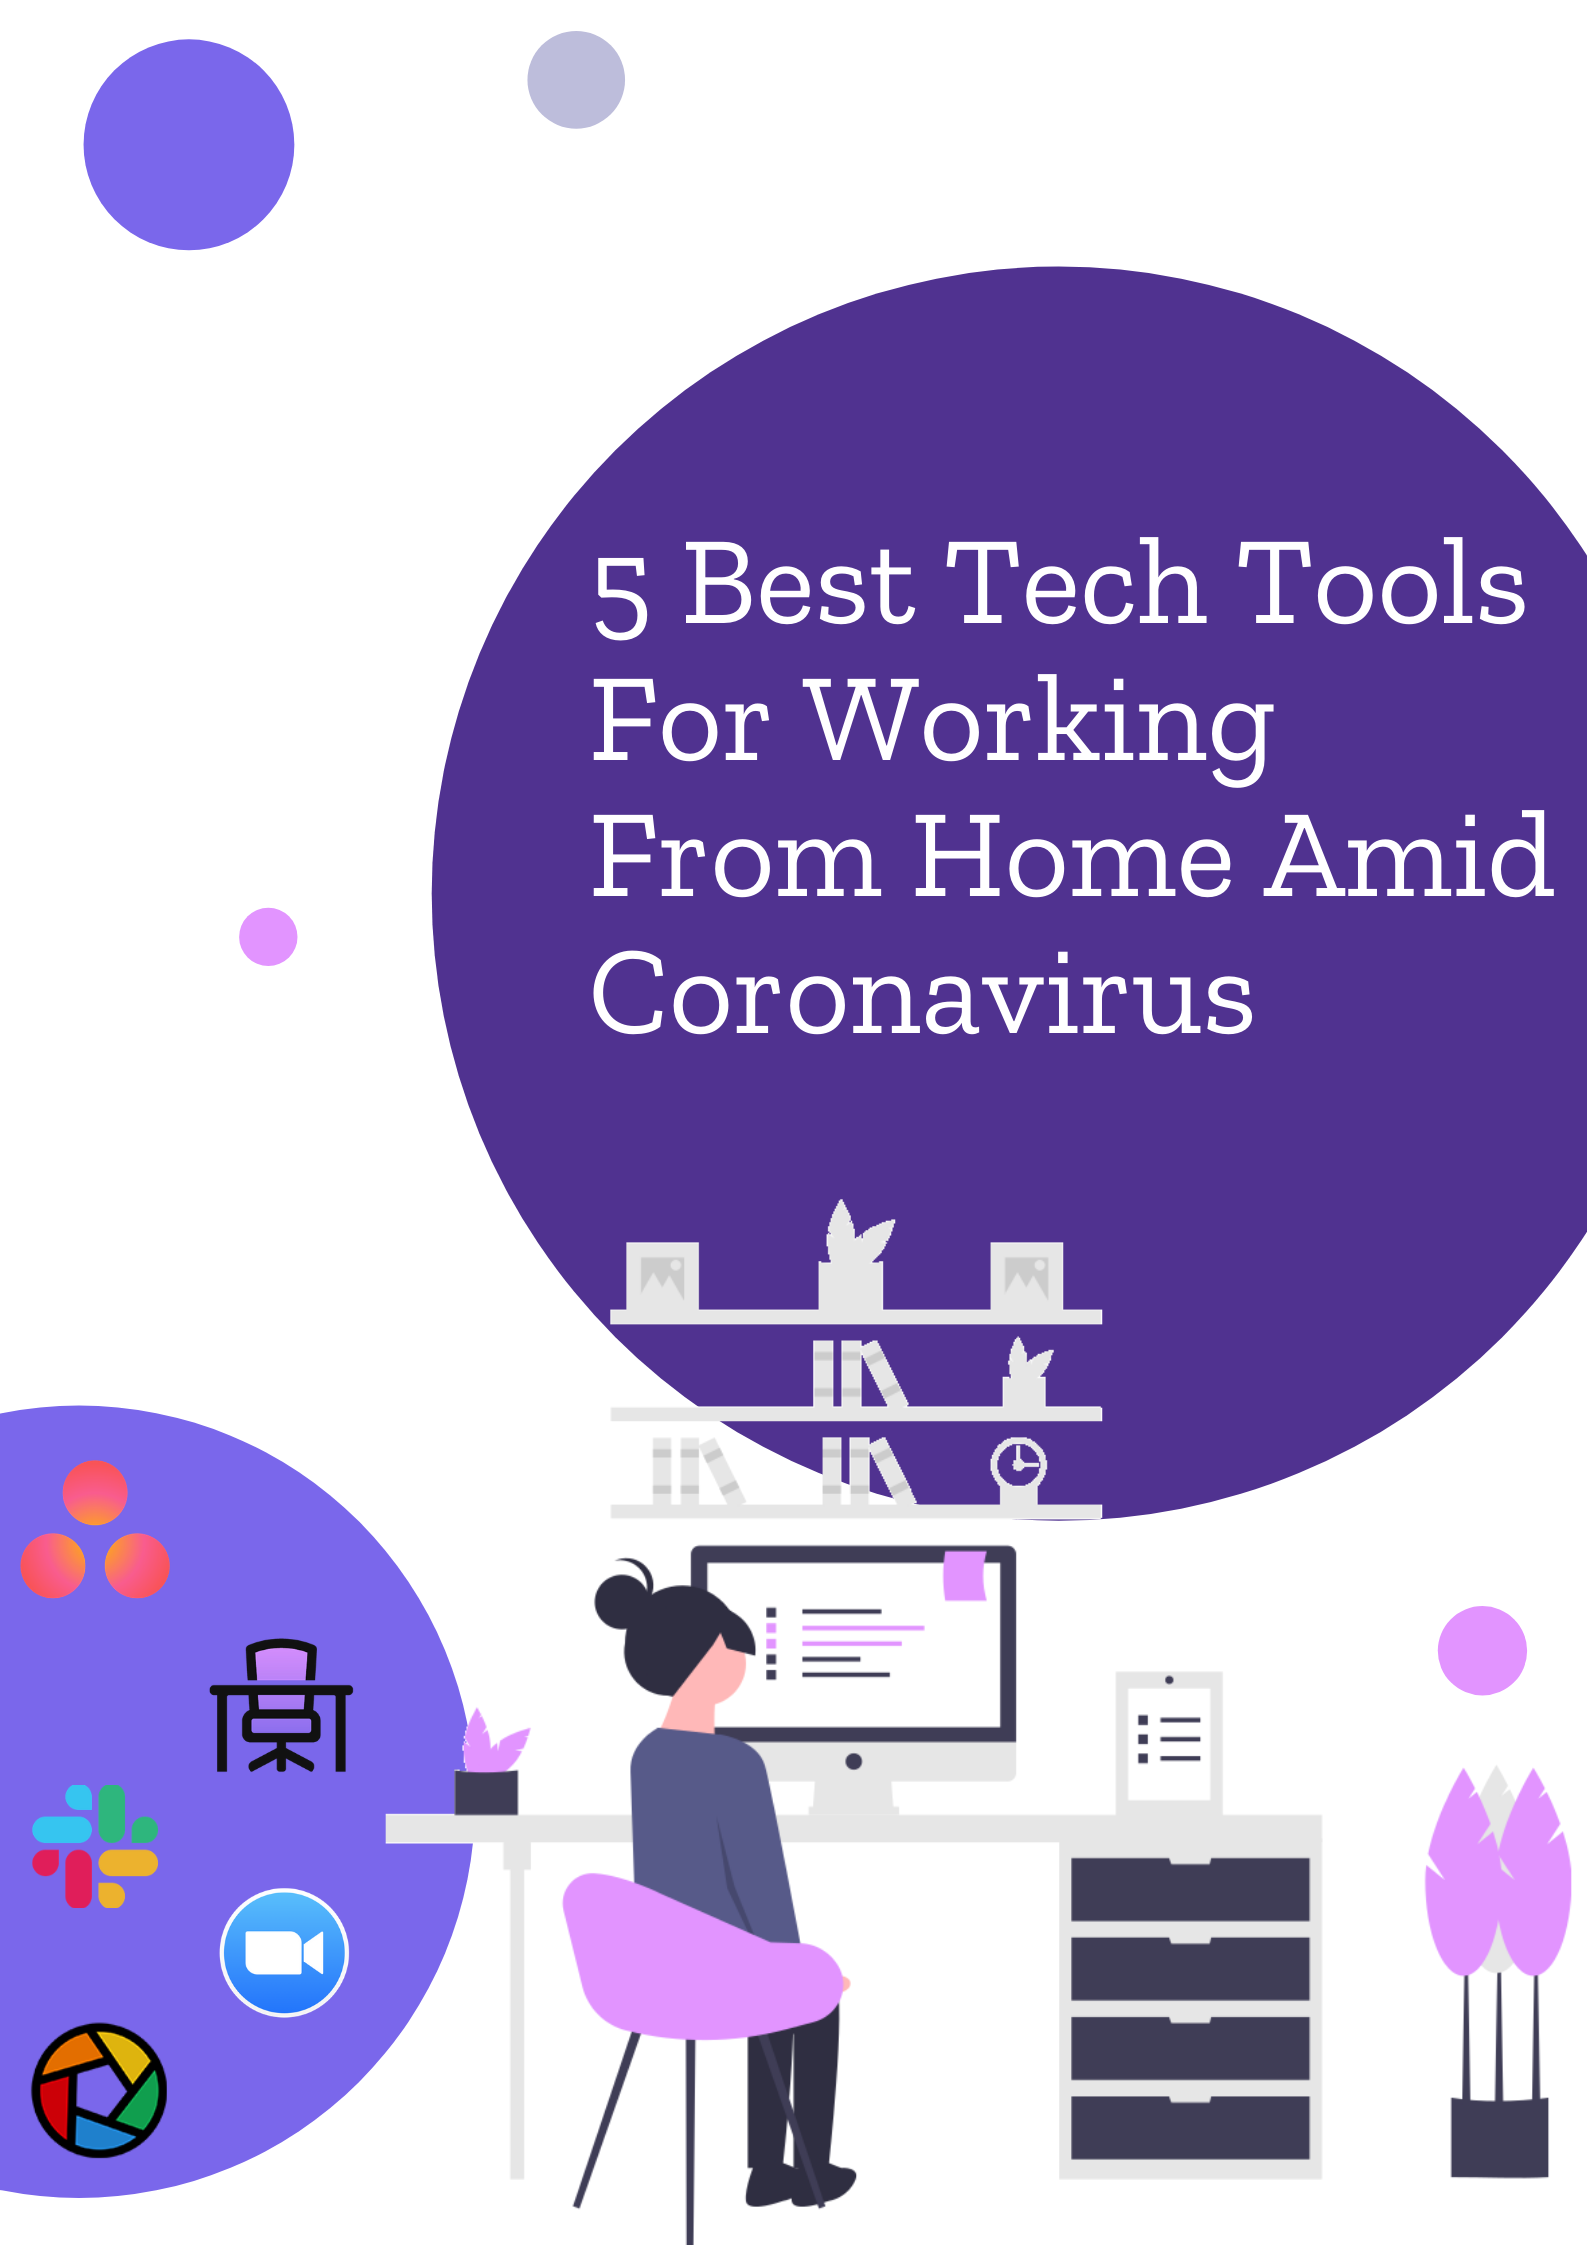 5 Best Tech Tools For Working From Home Amid Coronavirus